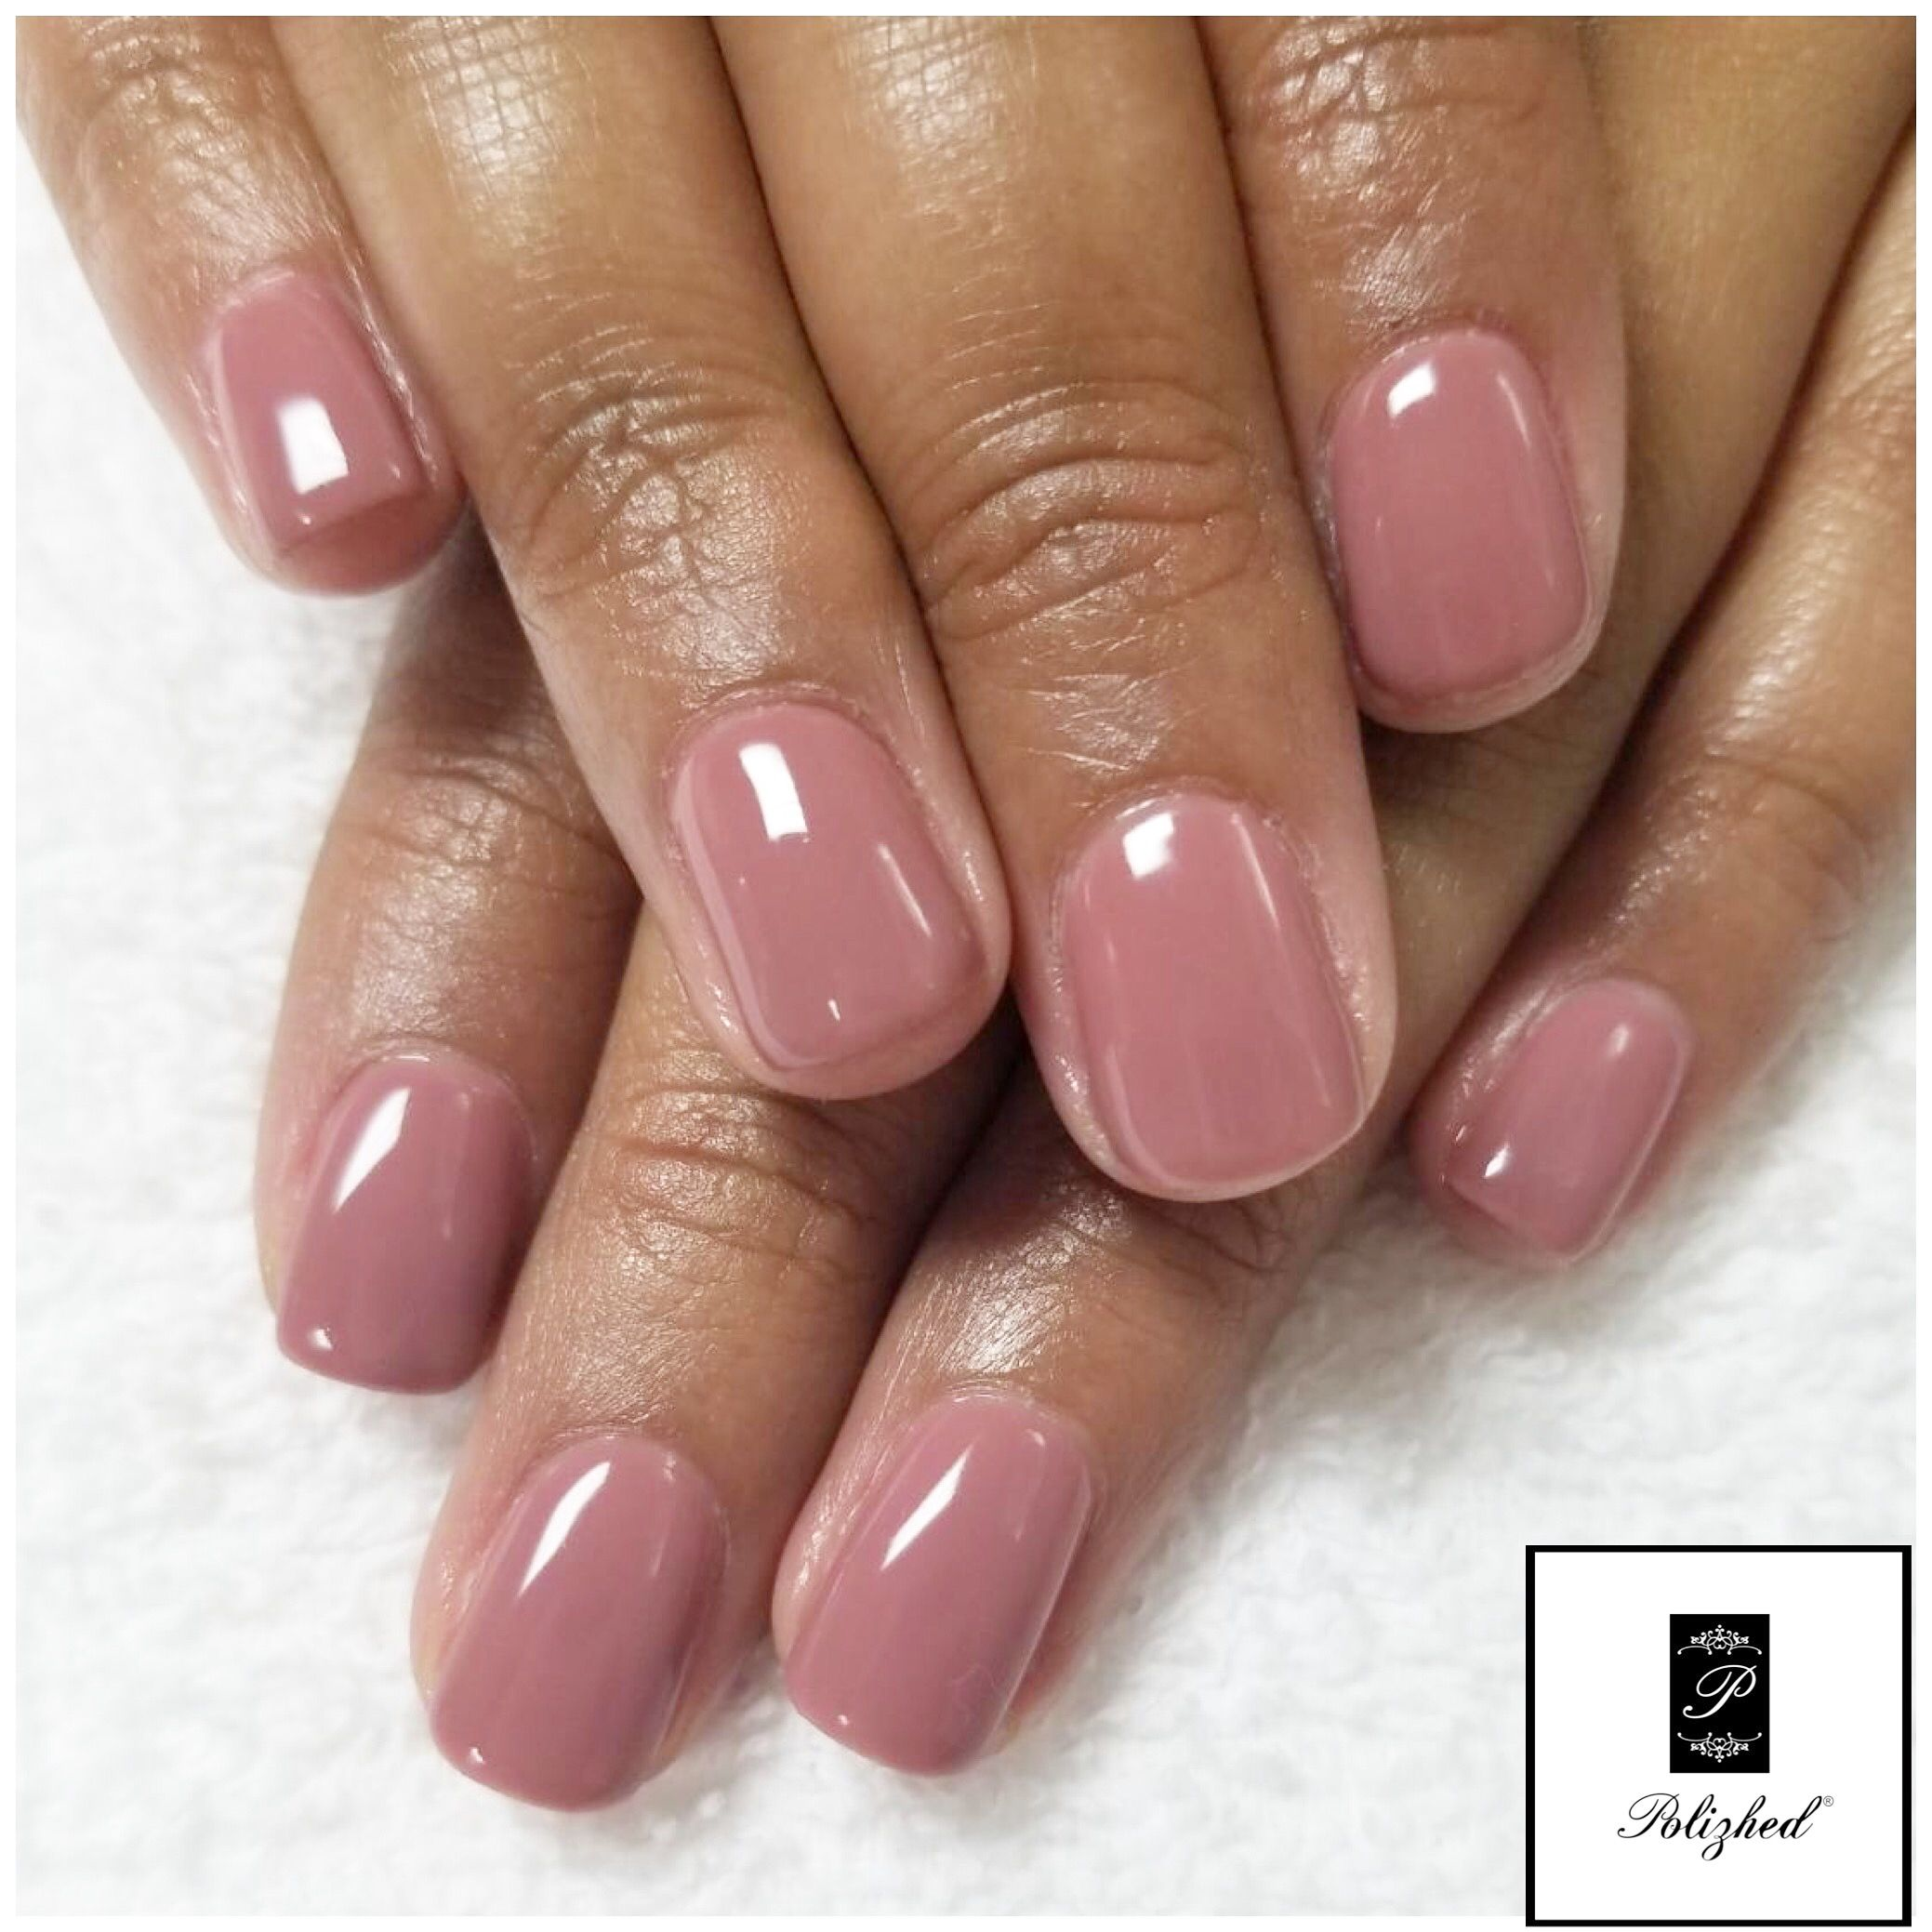 Polizhed Natural Nail Studio Beachwood Ohio Nail Salon Spa Skin Care Products Nail Salon And Spa Natural Nails Nails